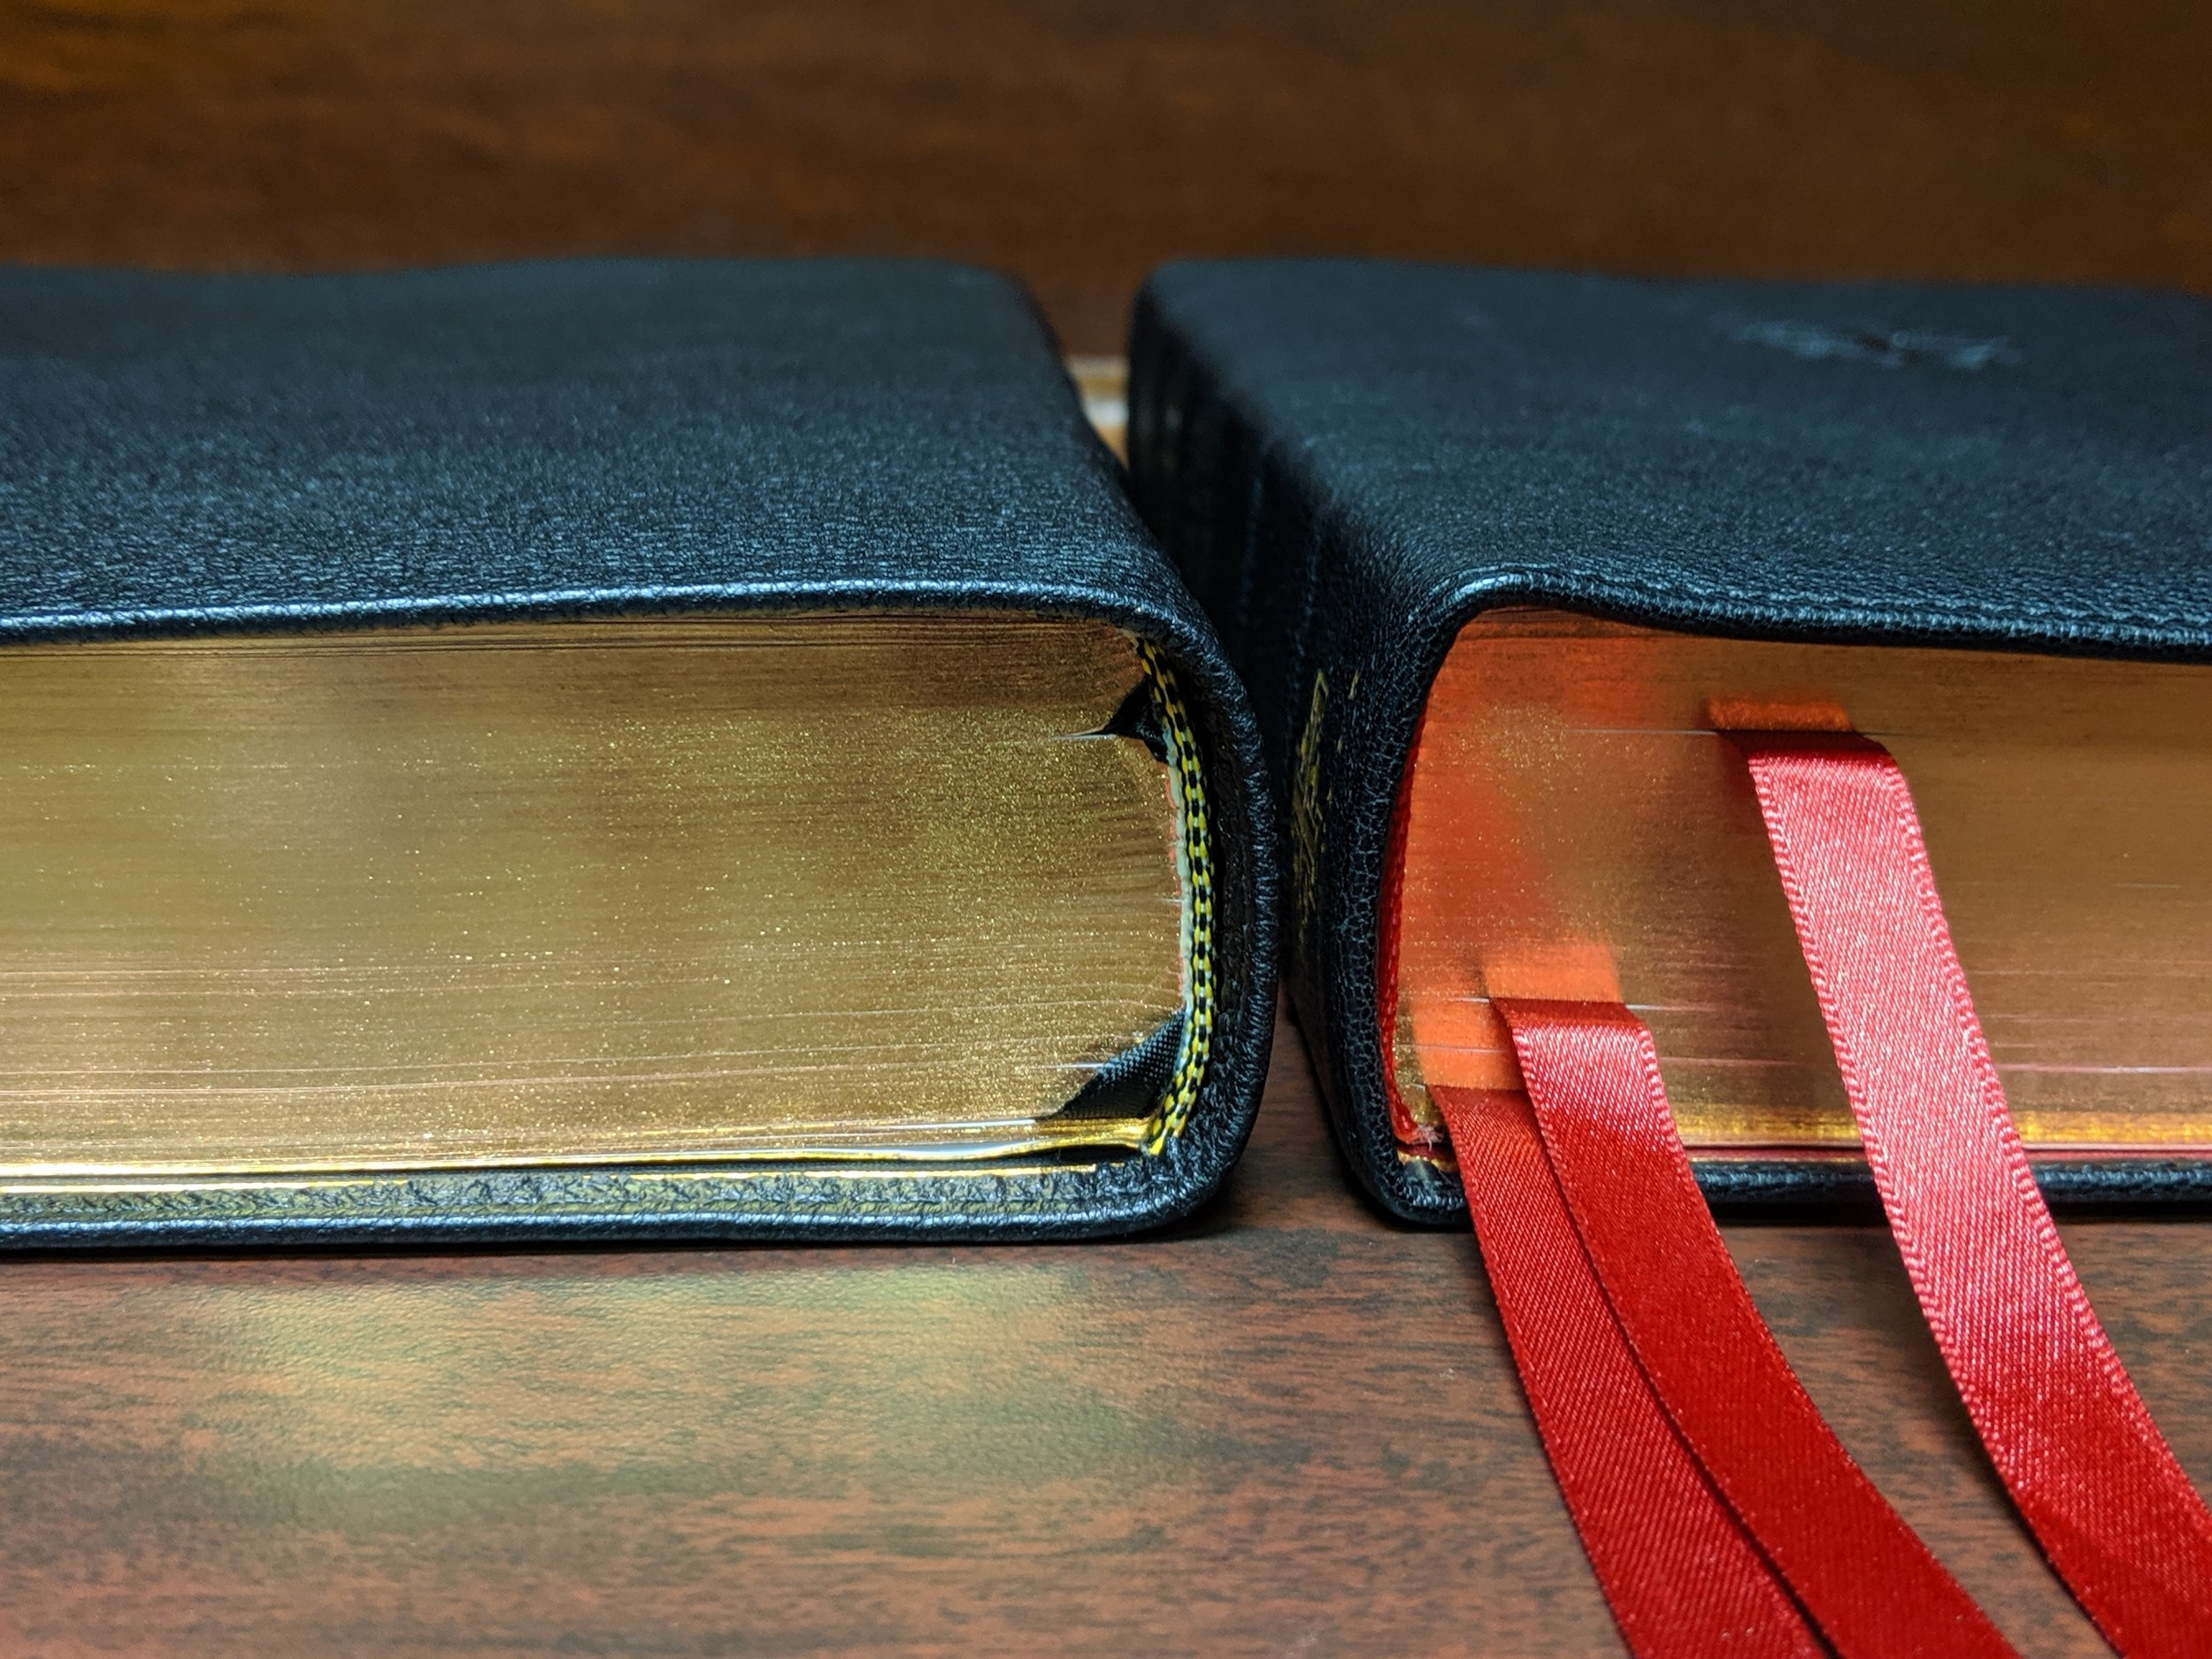 The Credo Quentel (right) may be just slightly thicker than the ESV Preaching Bible.